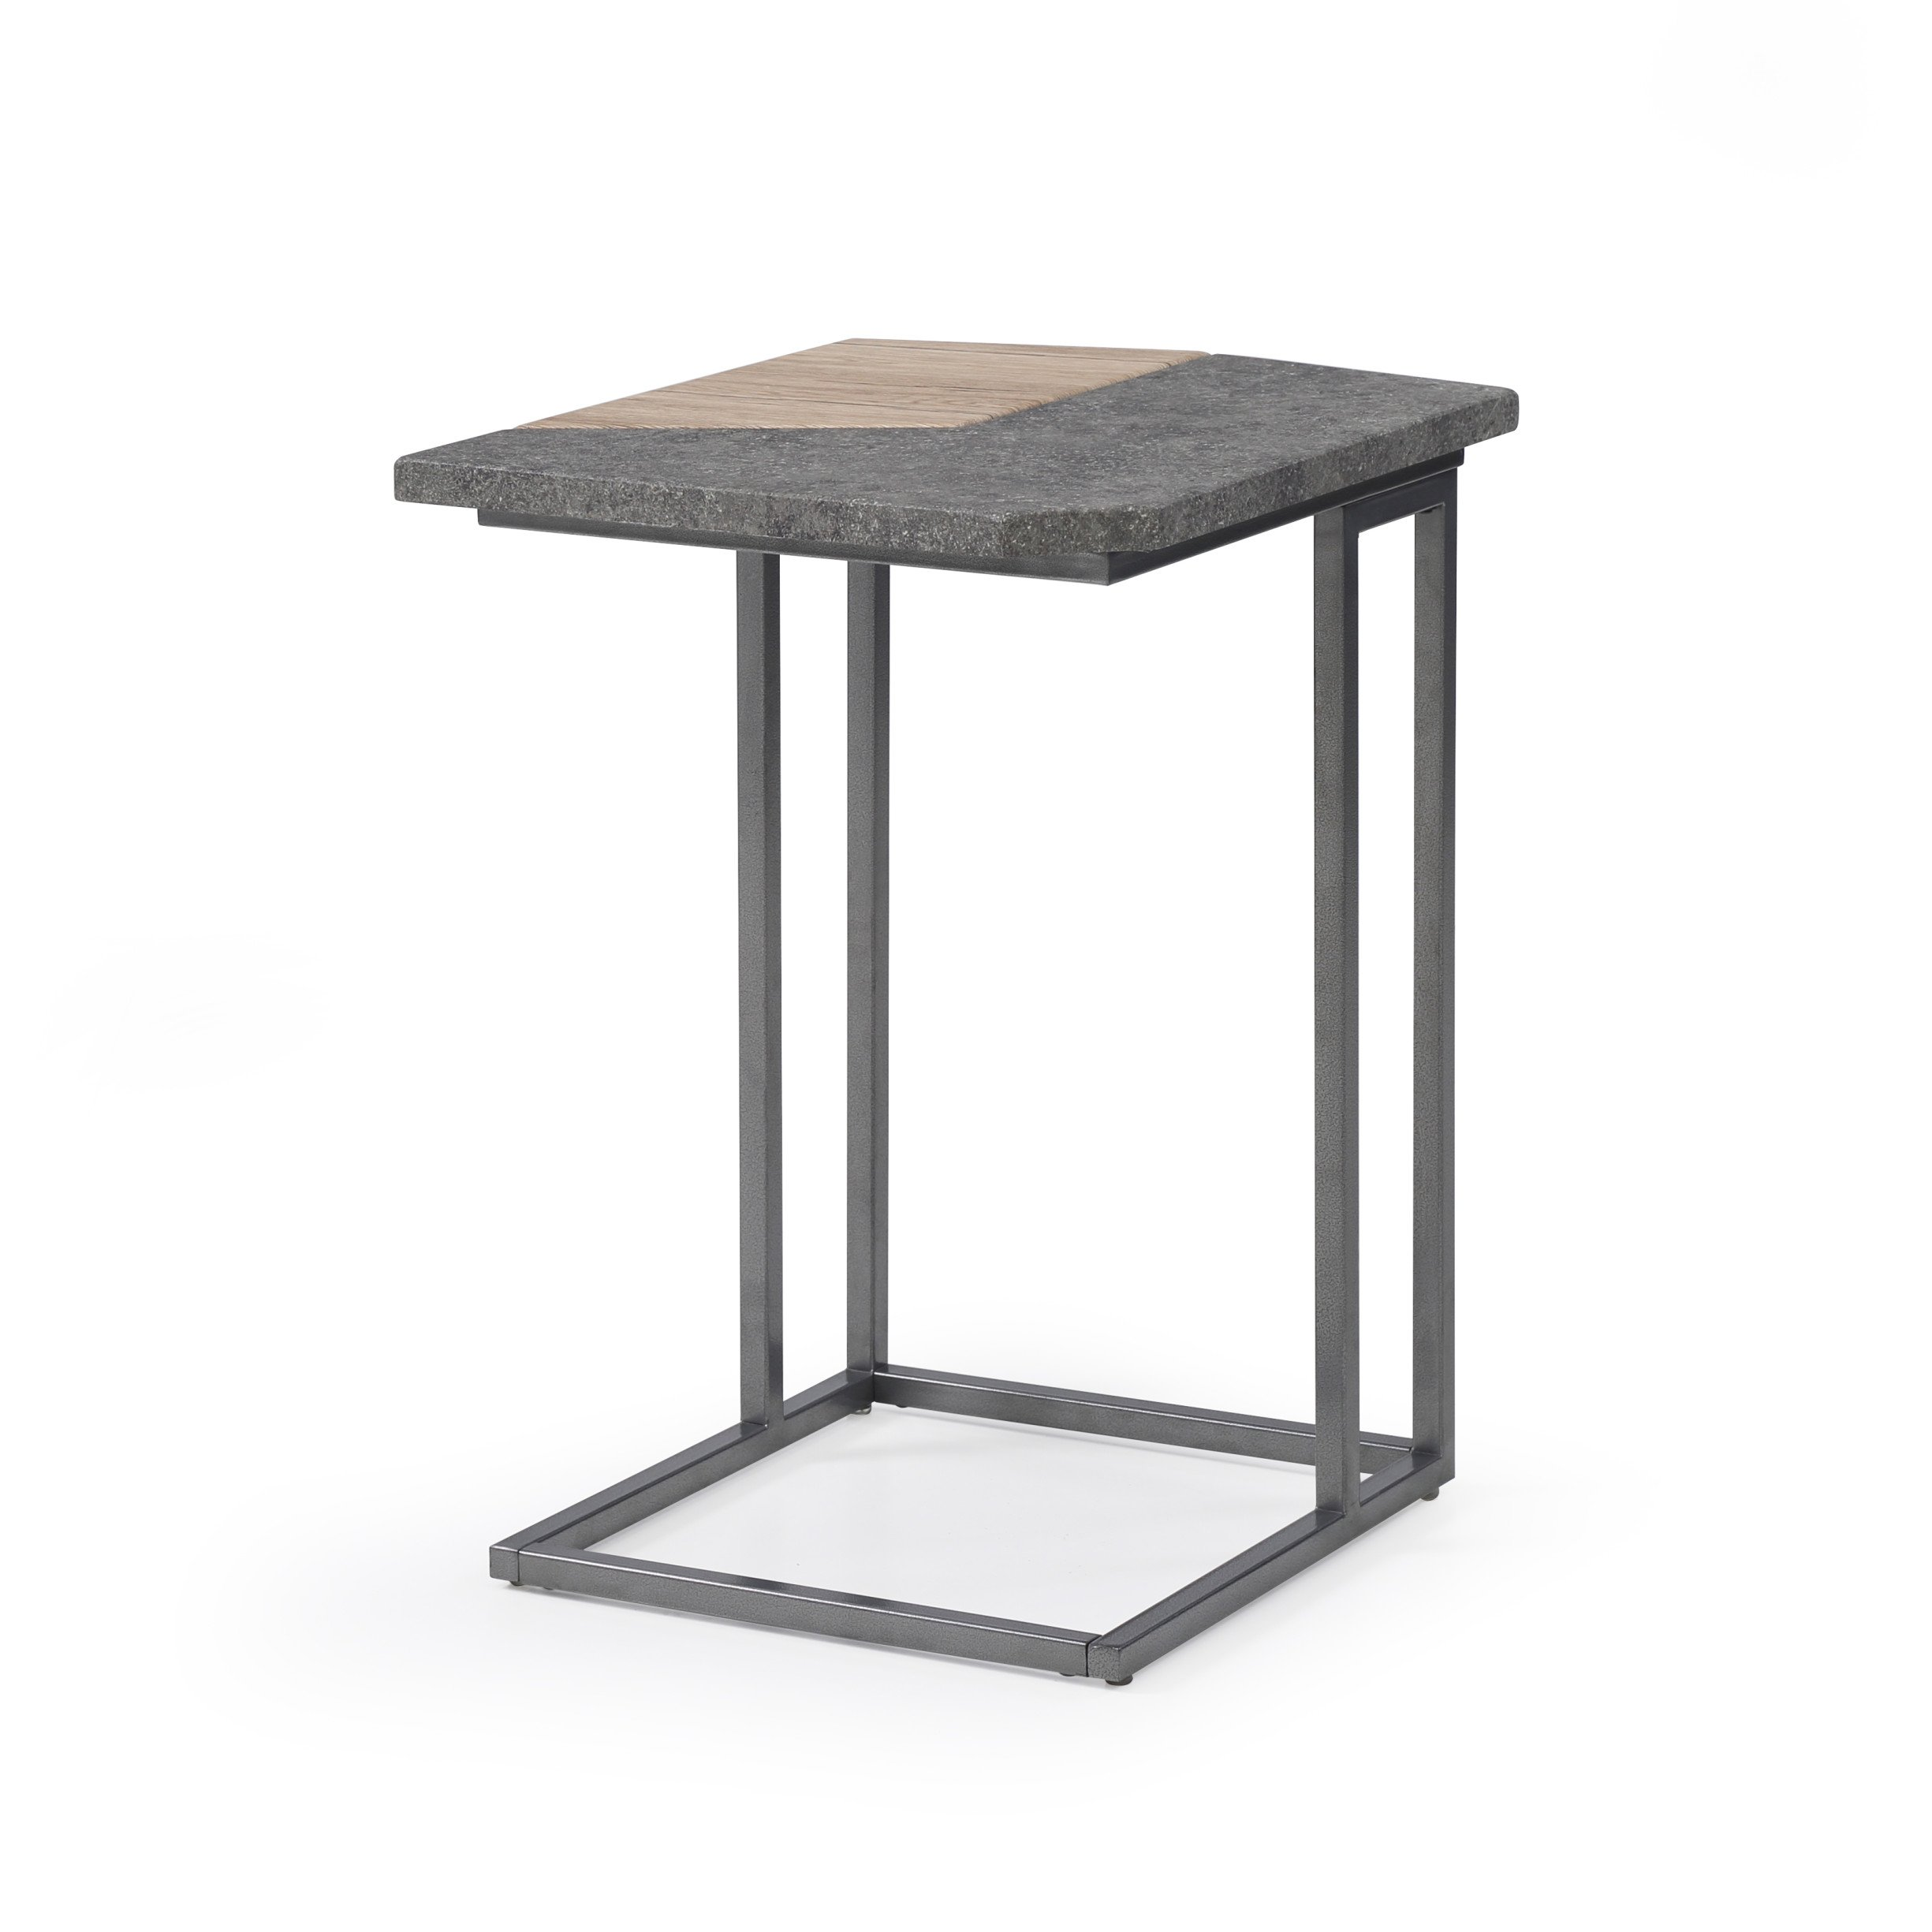 Artum Hill TA3-824 Tyler Laptop Table With Concrete-Look Top And Metal Base,rustic buff